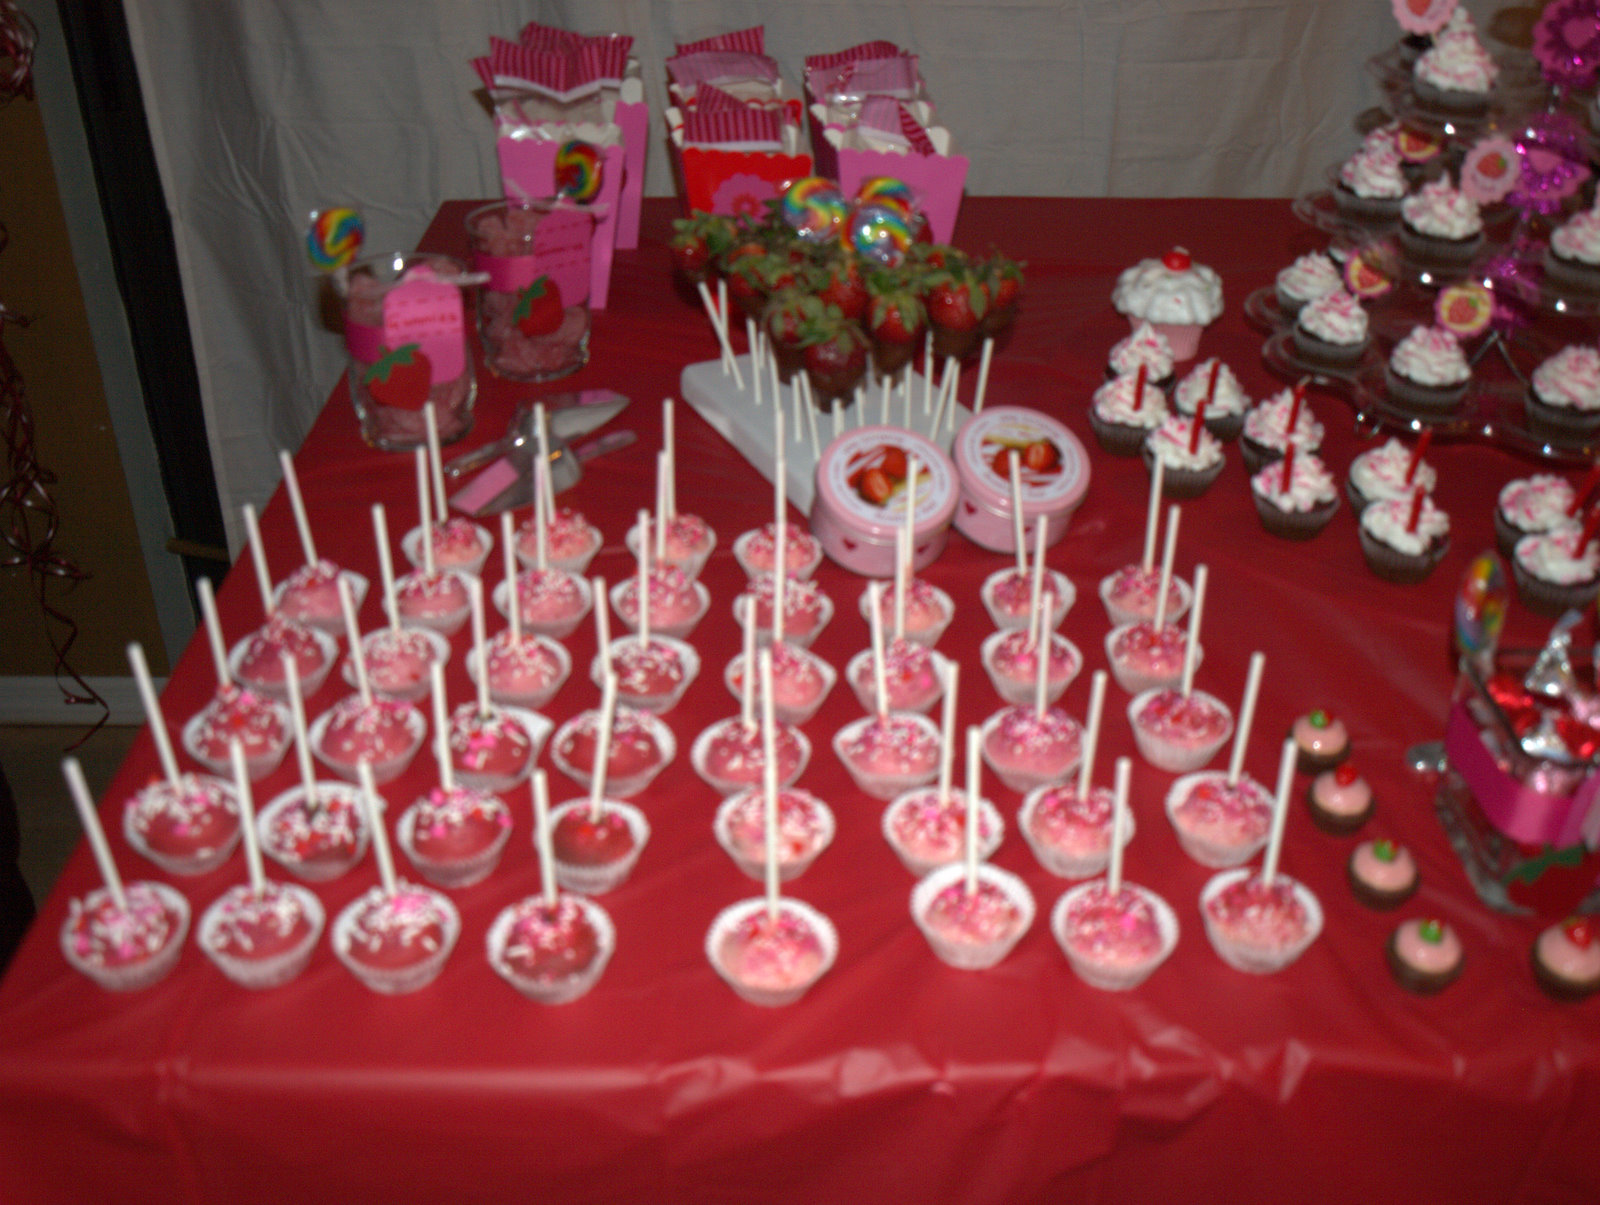 Juneills Parties Sweets Sharys Strawberry Shortcake 18th